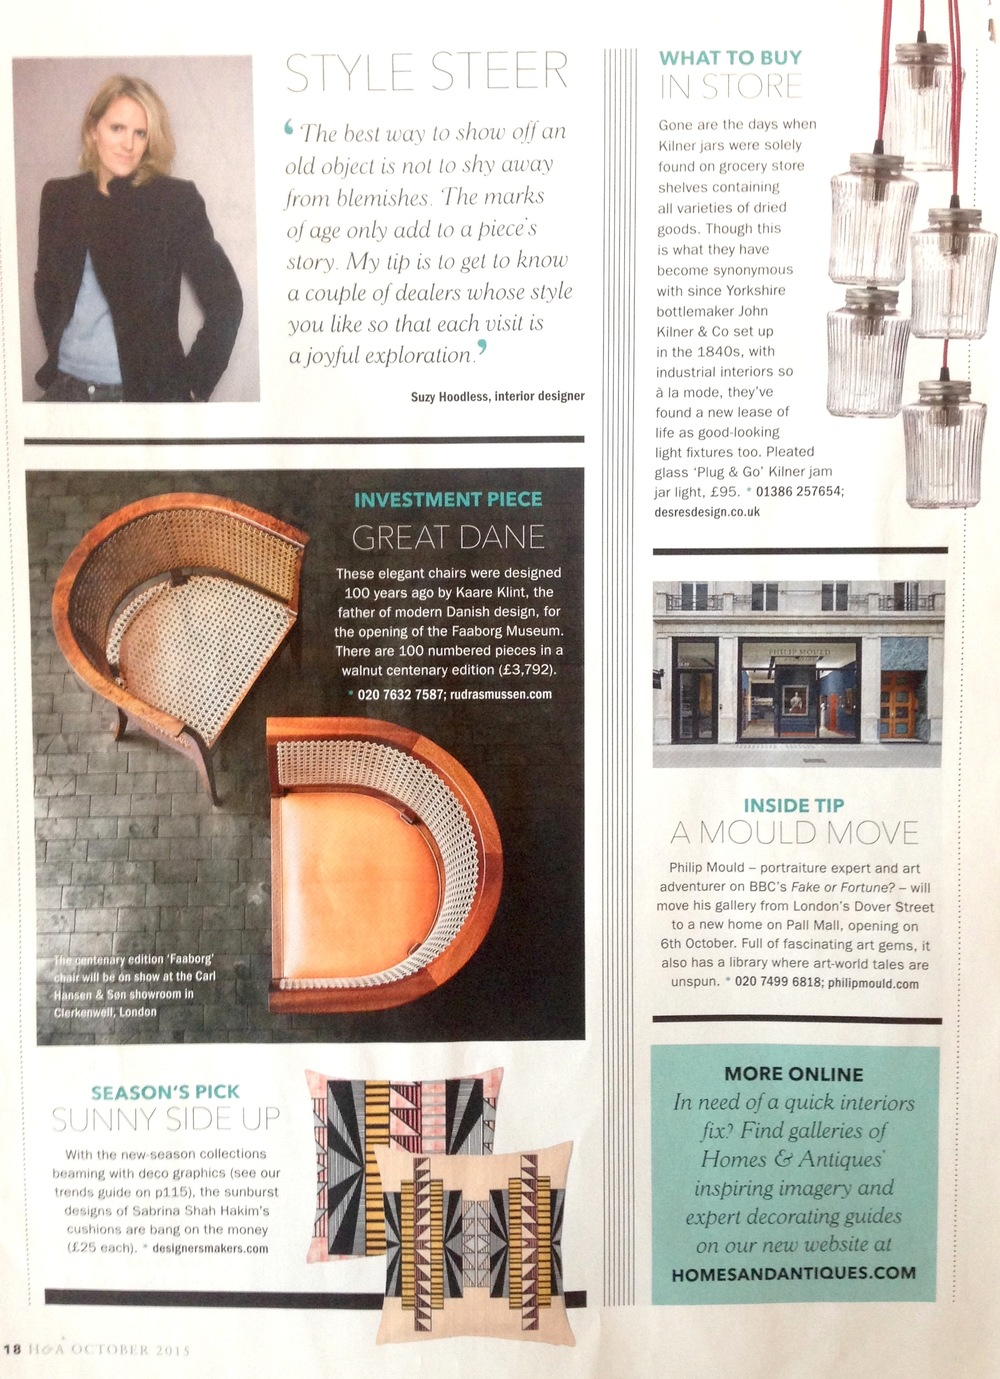 Homes & Antiques Magazine, October 2015